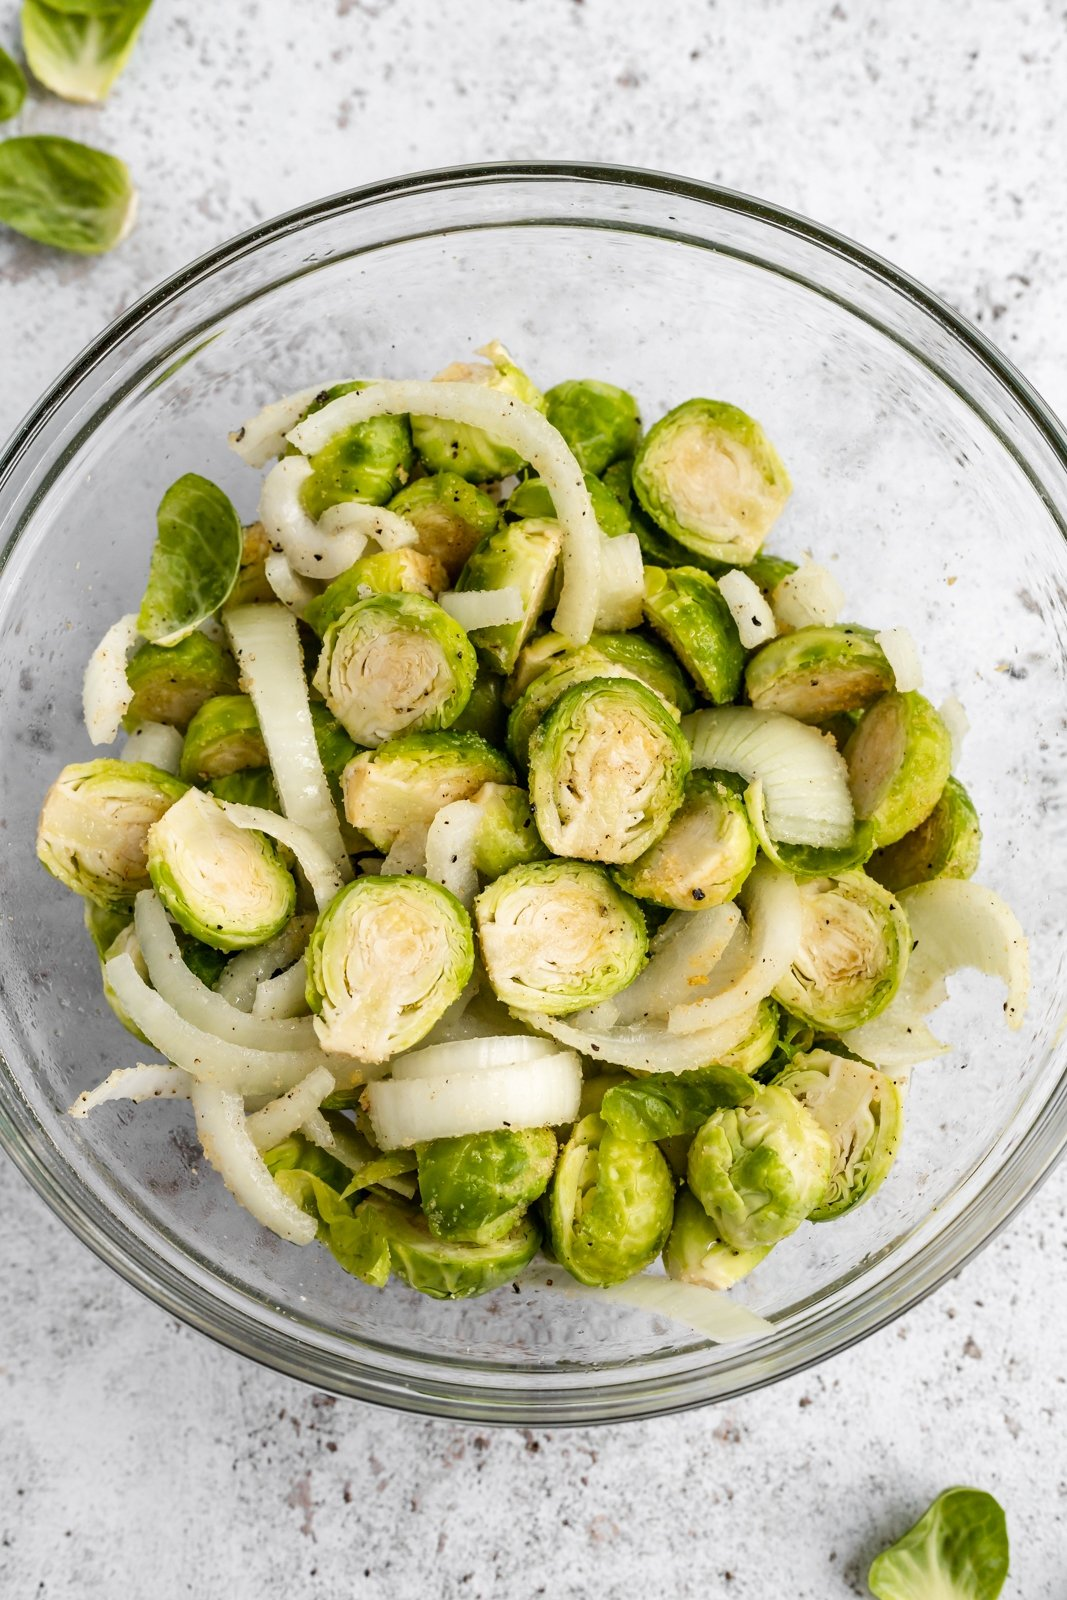 brussels sprouts and yellow onion in a bowl